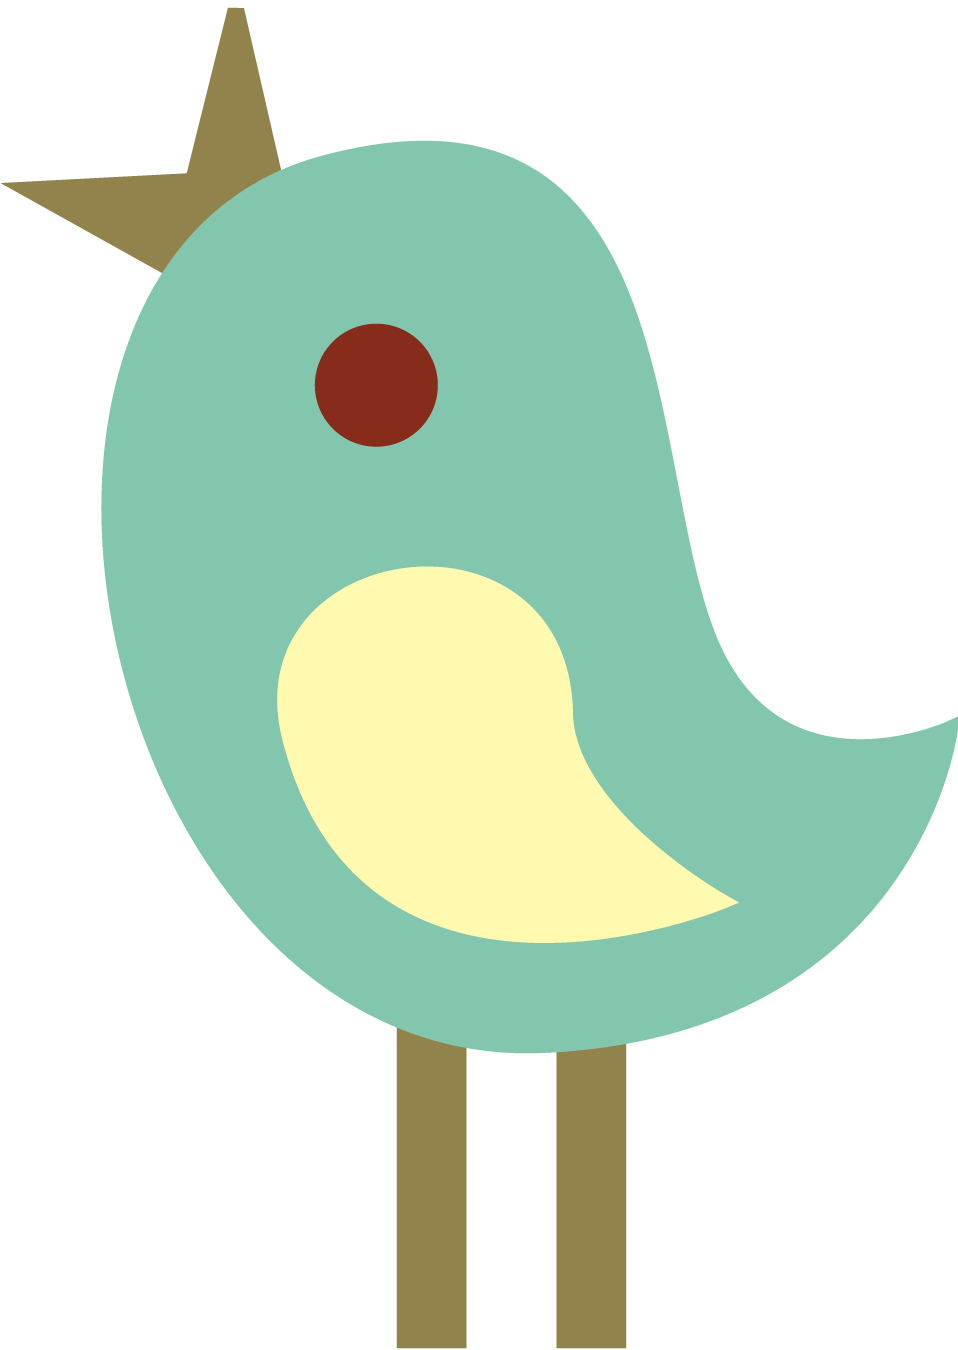 Cute Birds Cliparts Great For Any Projec-Cute Birds Cliparts Great For Any Projects Blog Paper Craft And-9